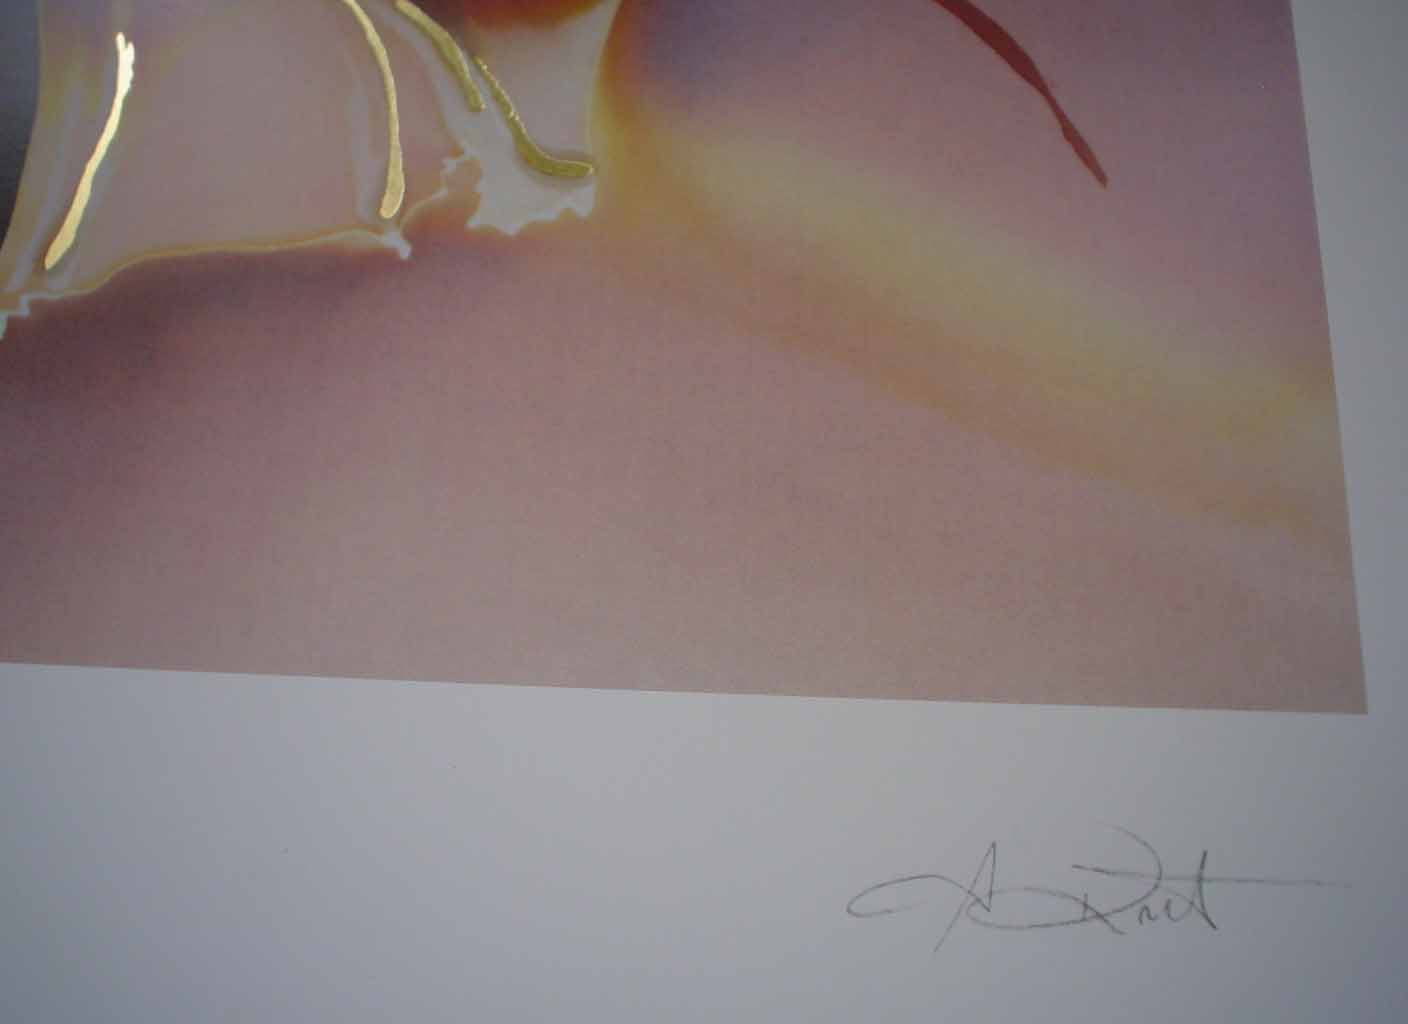 Souvenir D'Un Voyage II by Meridian Publishing, signed by unknown artist, detail to show signature - offset lithograph reproduction with gold foil embossed insets vintage fine art print